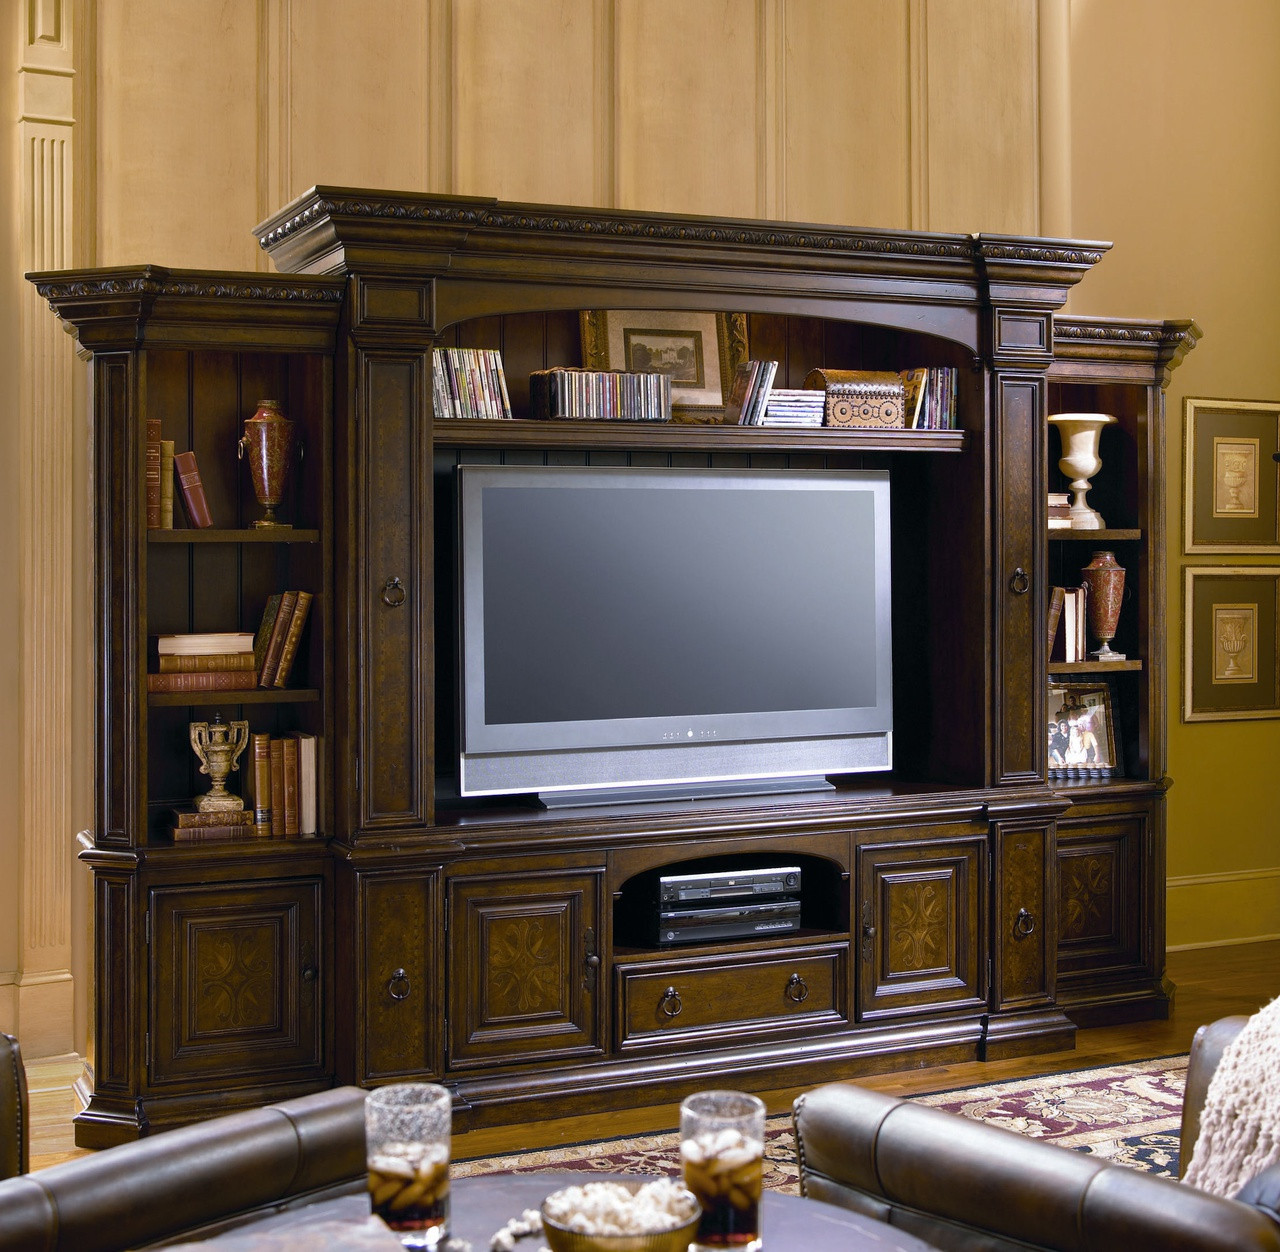 Bolero TV Entertainment Wall Unit | Zin Home